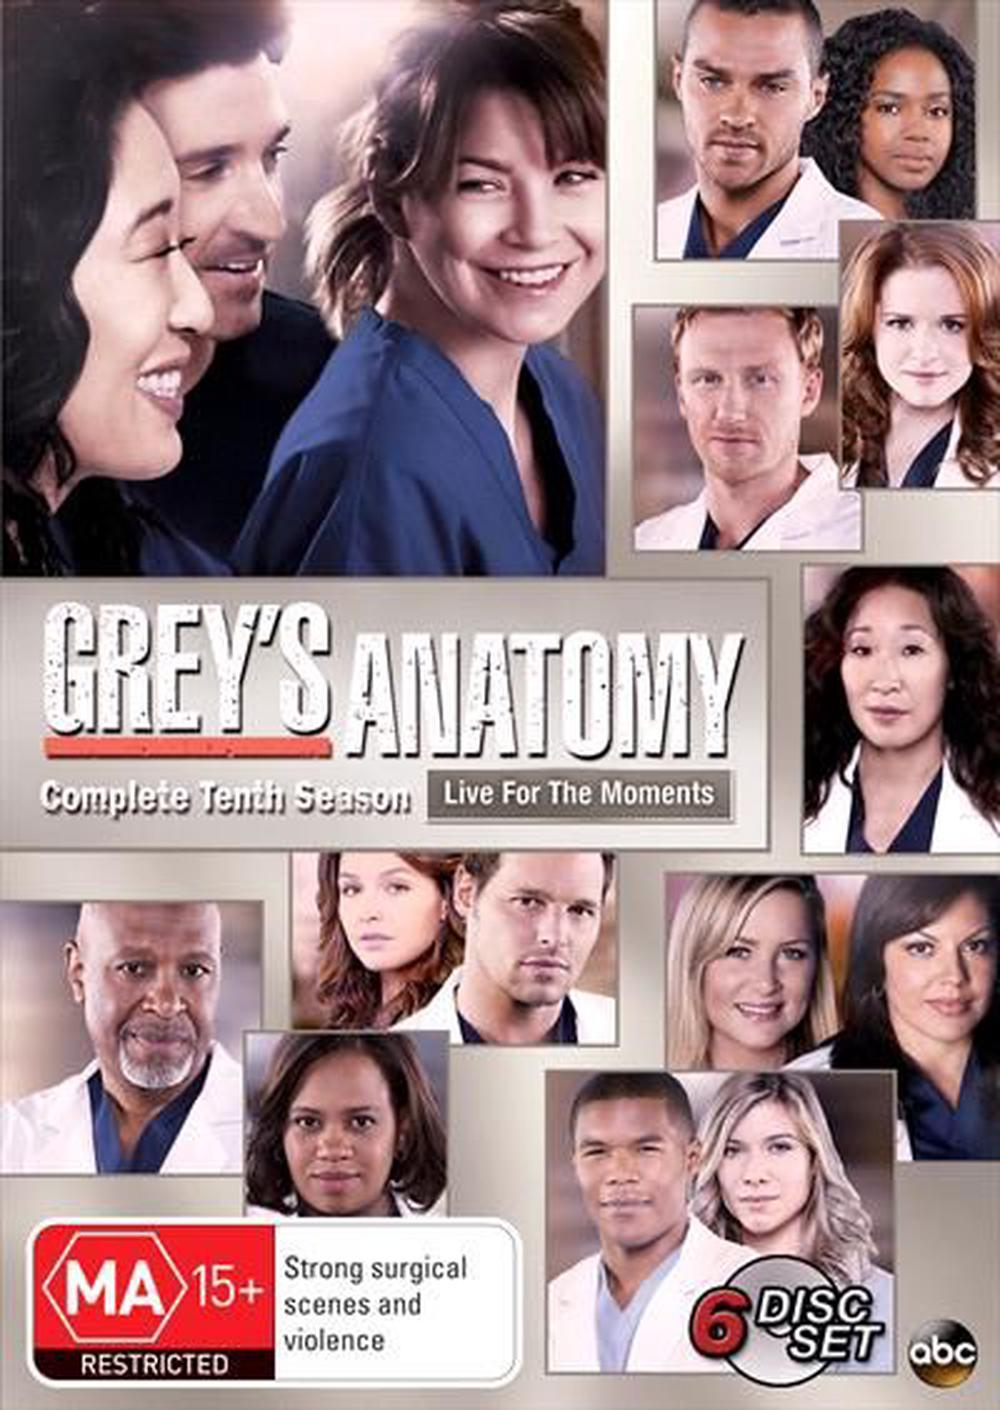 Greys Anatomy Season 10 Dvd Buy Online At The Nile